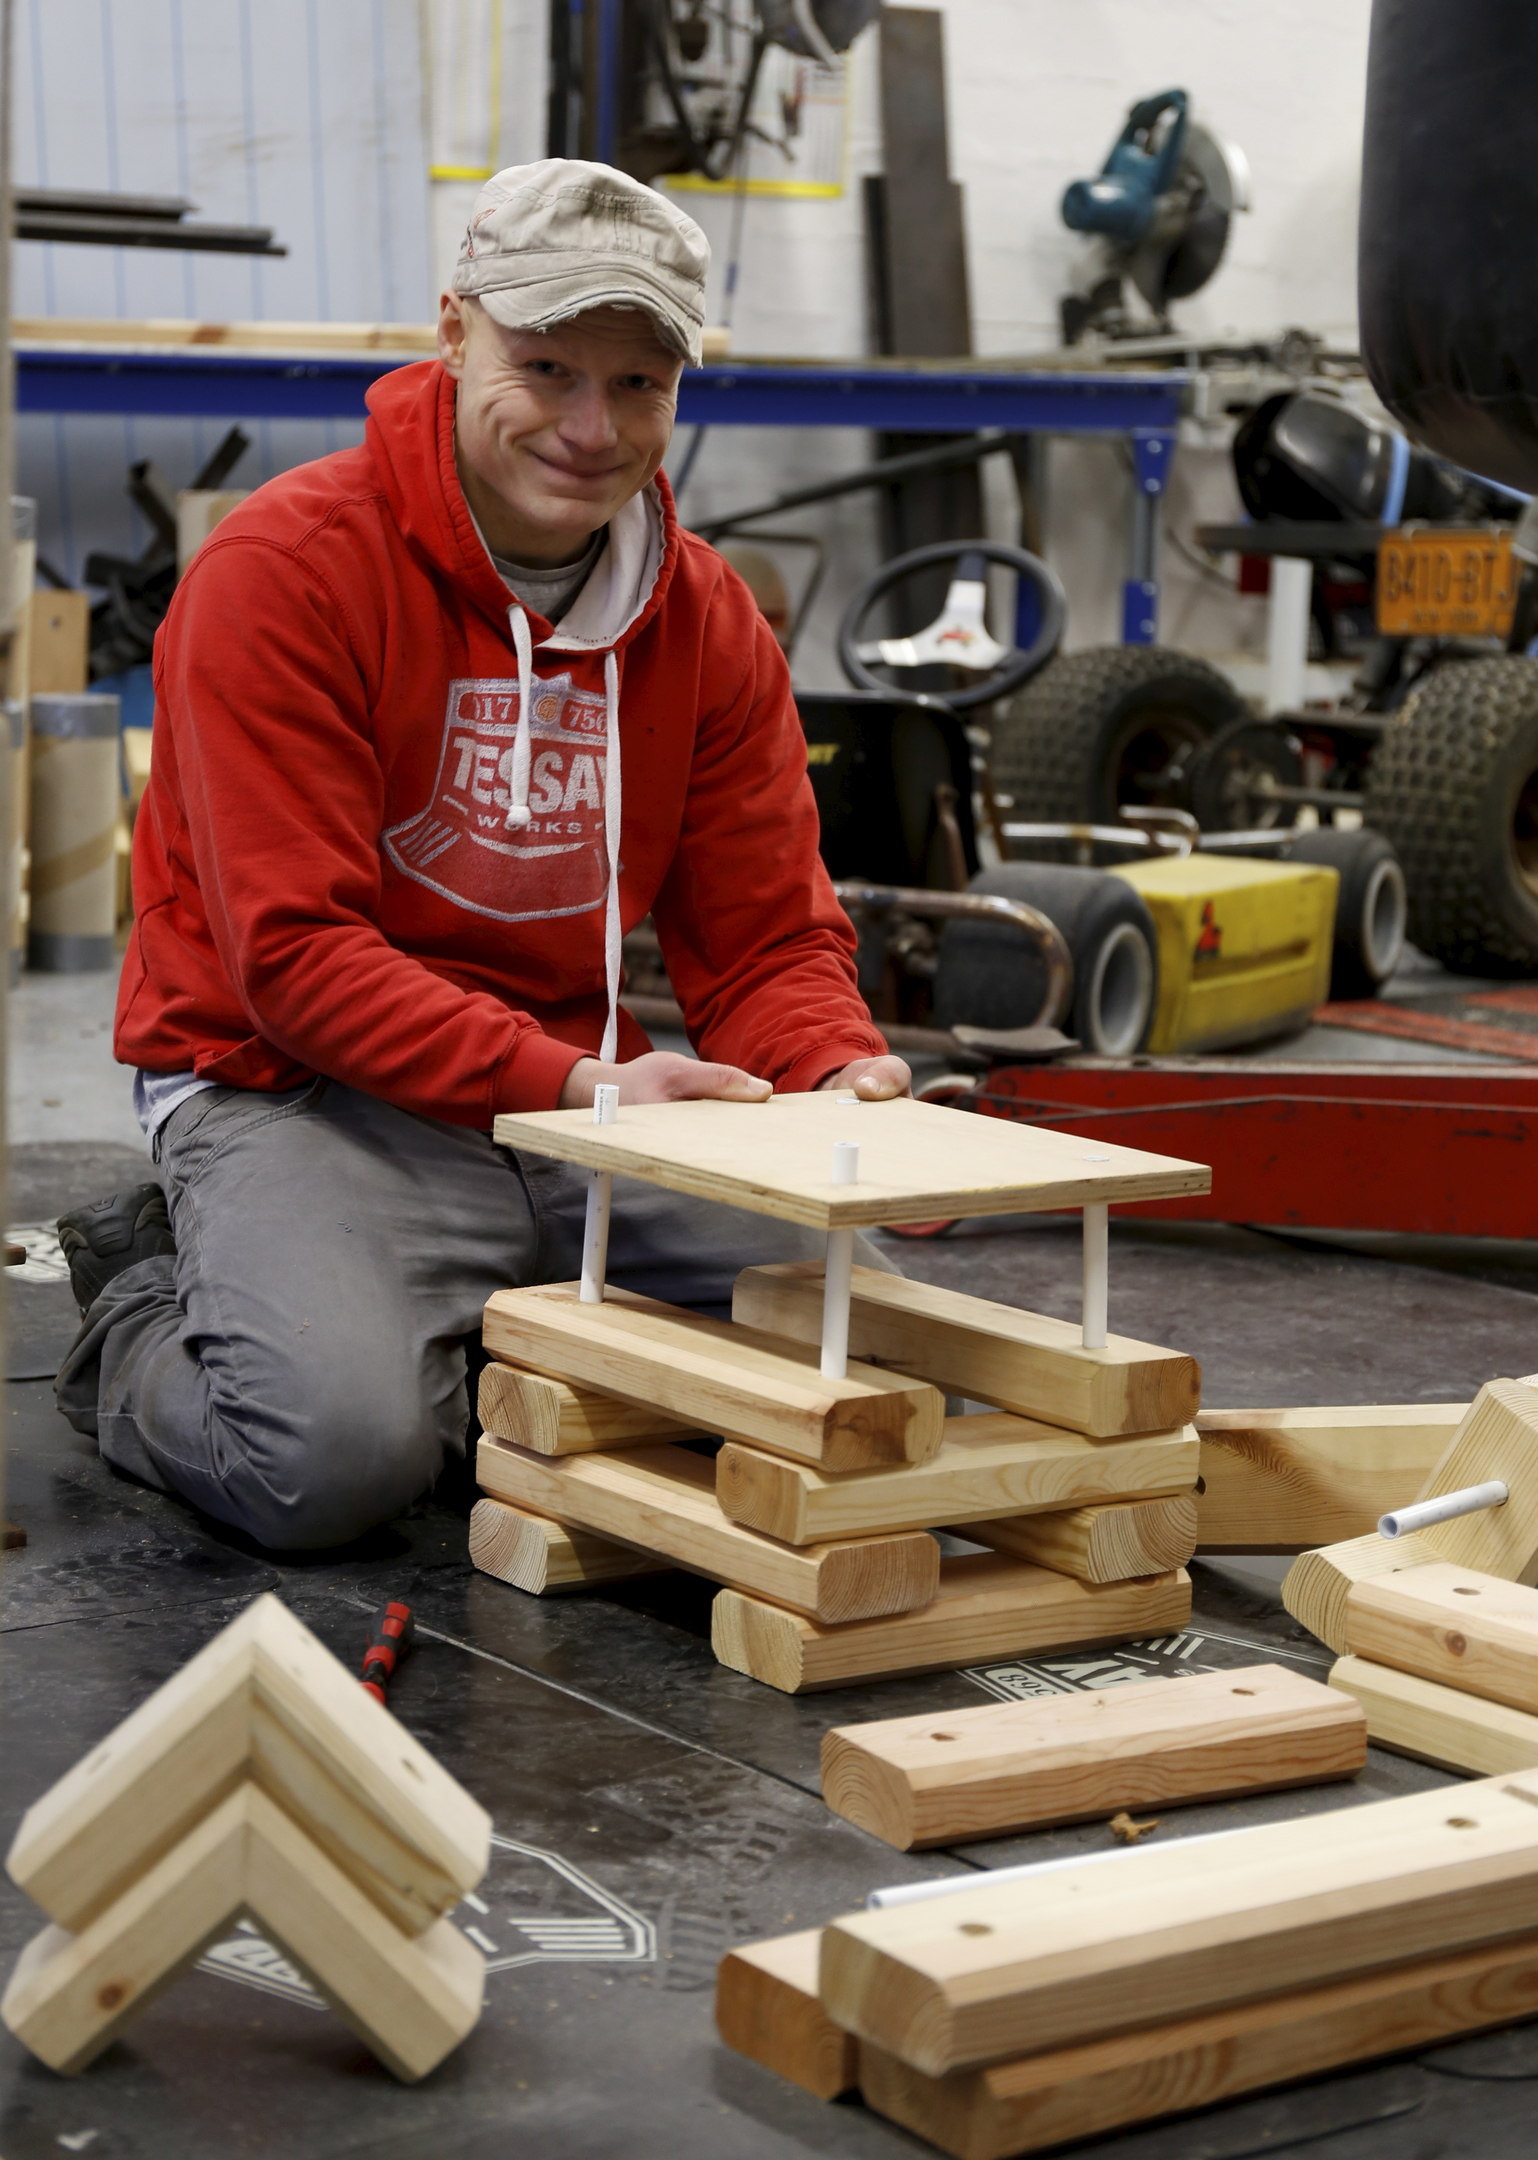 Ben has created Tessay Blocks, wooden bricks  which can be transformed into countless structures.